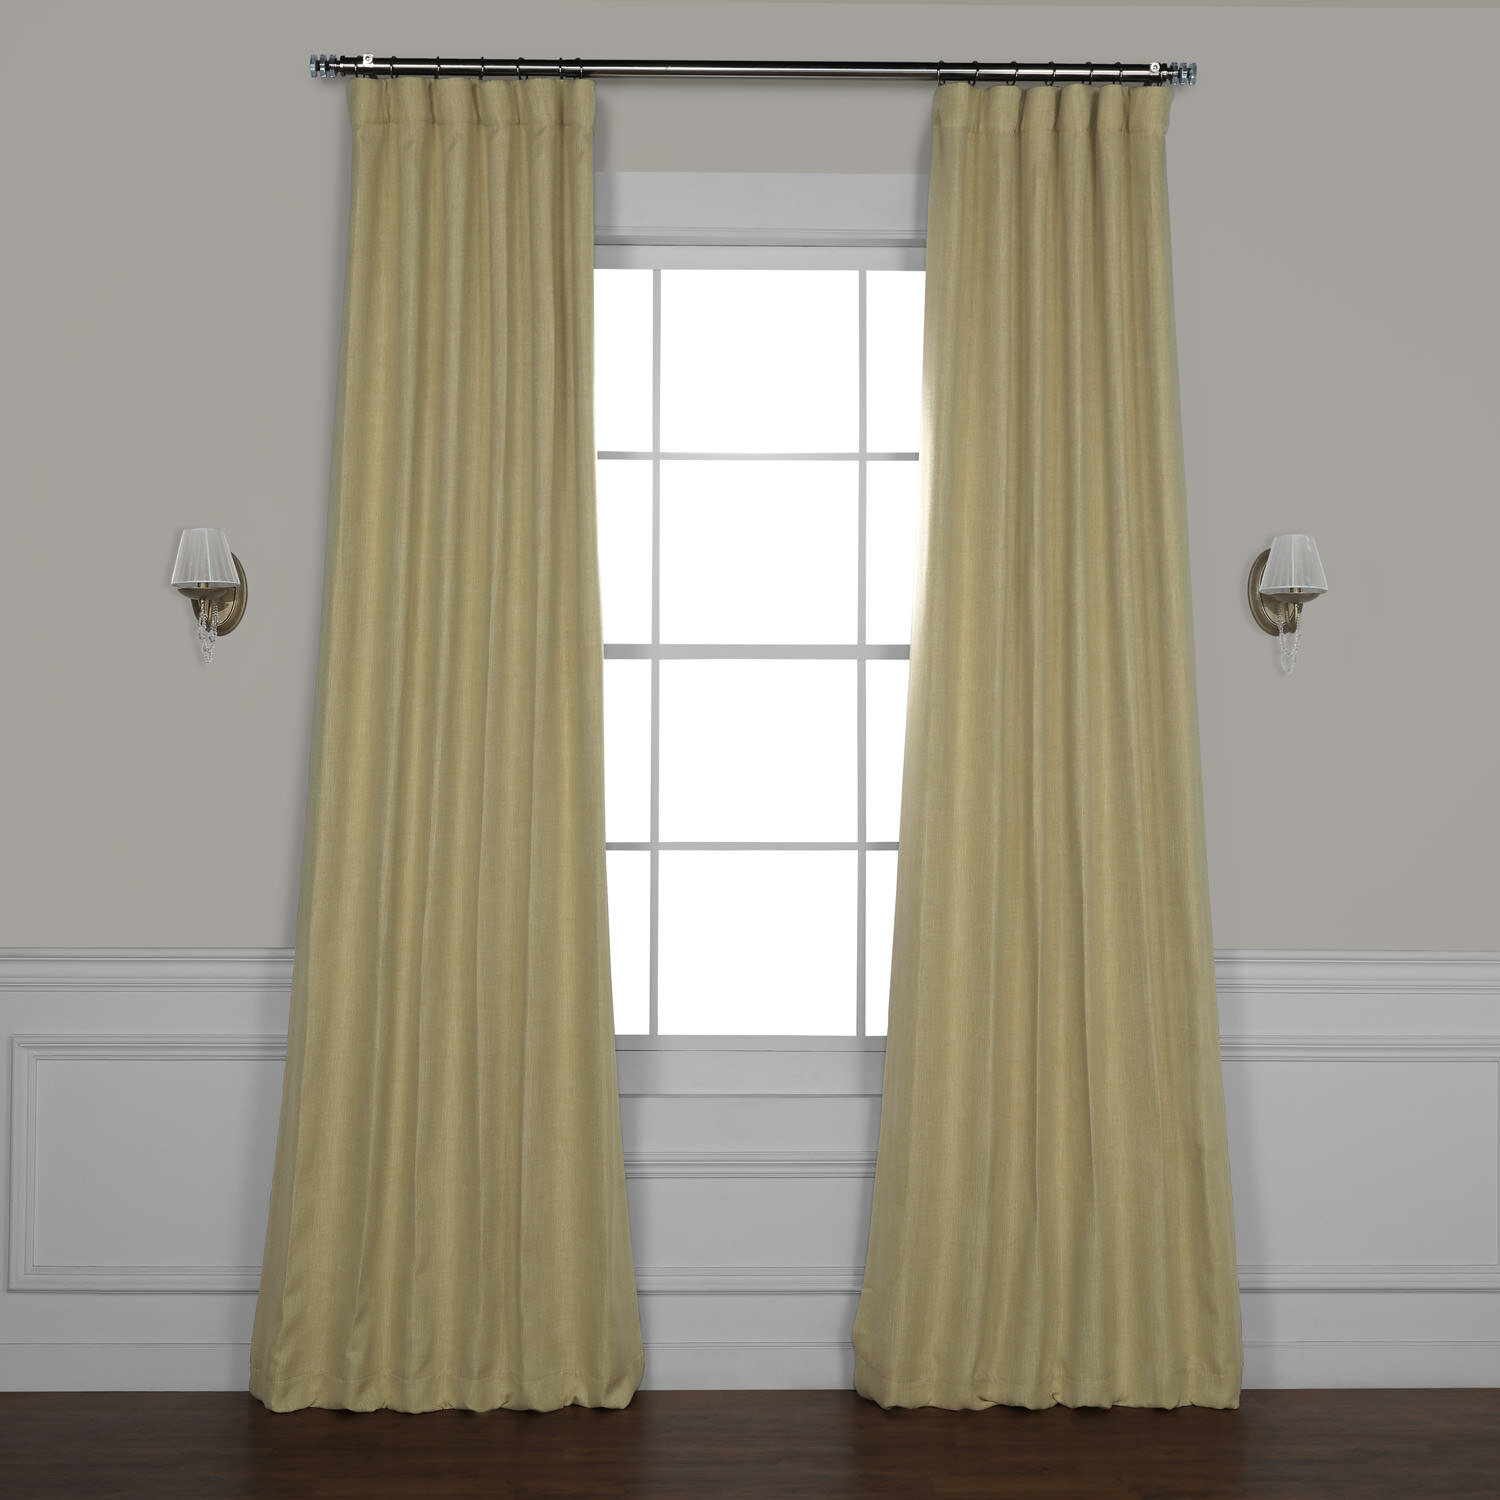 Clem Faux Linen Room Darkening Rod Pocket Single Curtain Panel Within Luxury Collection Faux Leather Blackout Single Curtain Panels (View 11 of 20)